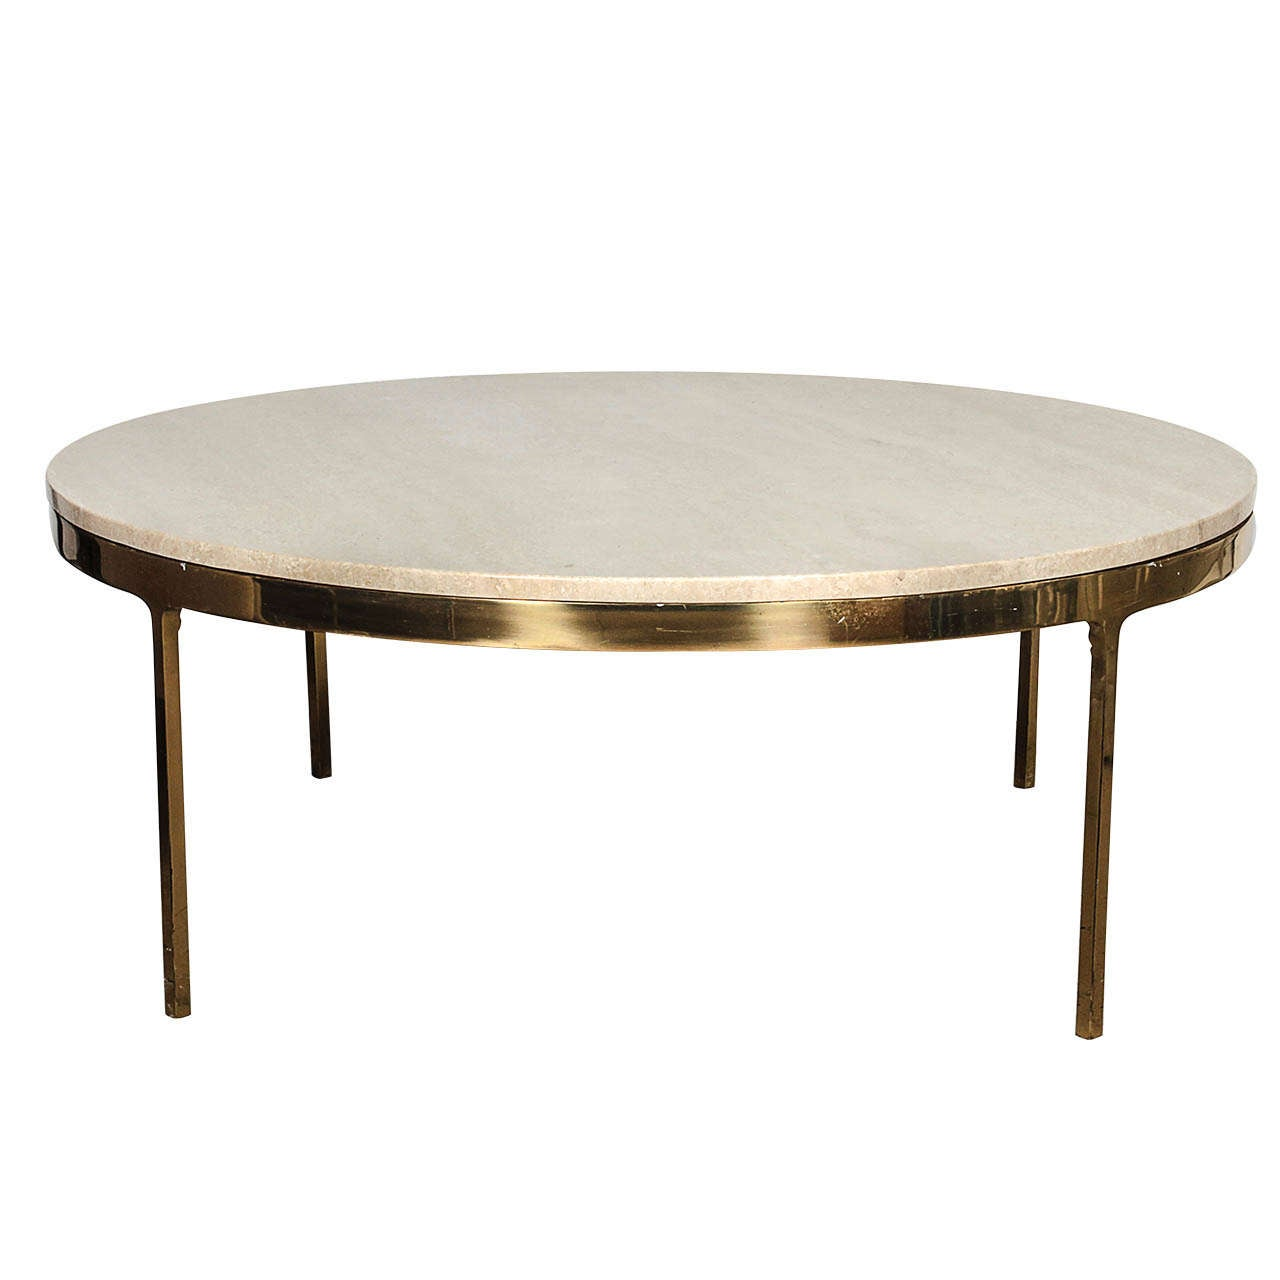 Brass and travertine round coffee table by nico zographos at 1stdibs Brass round coffee table